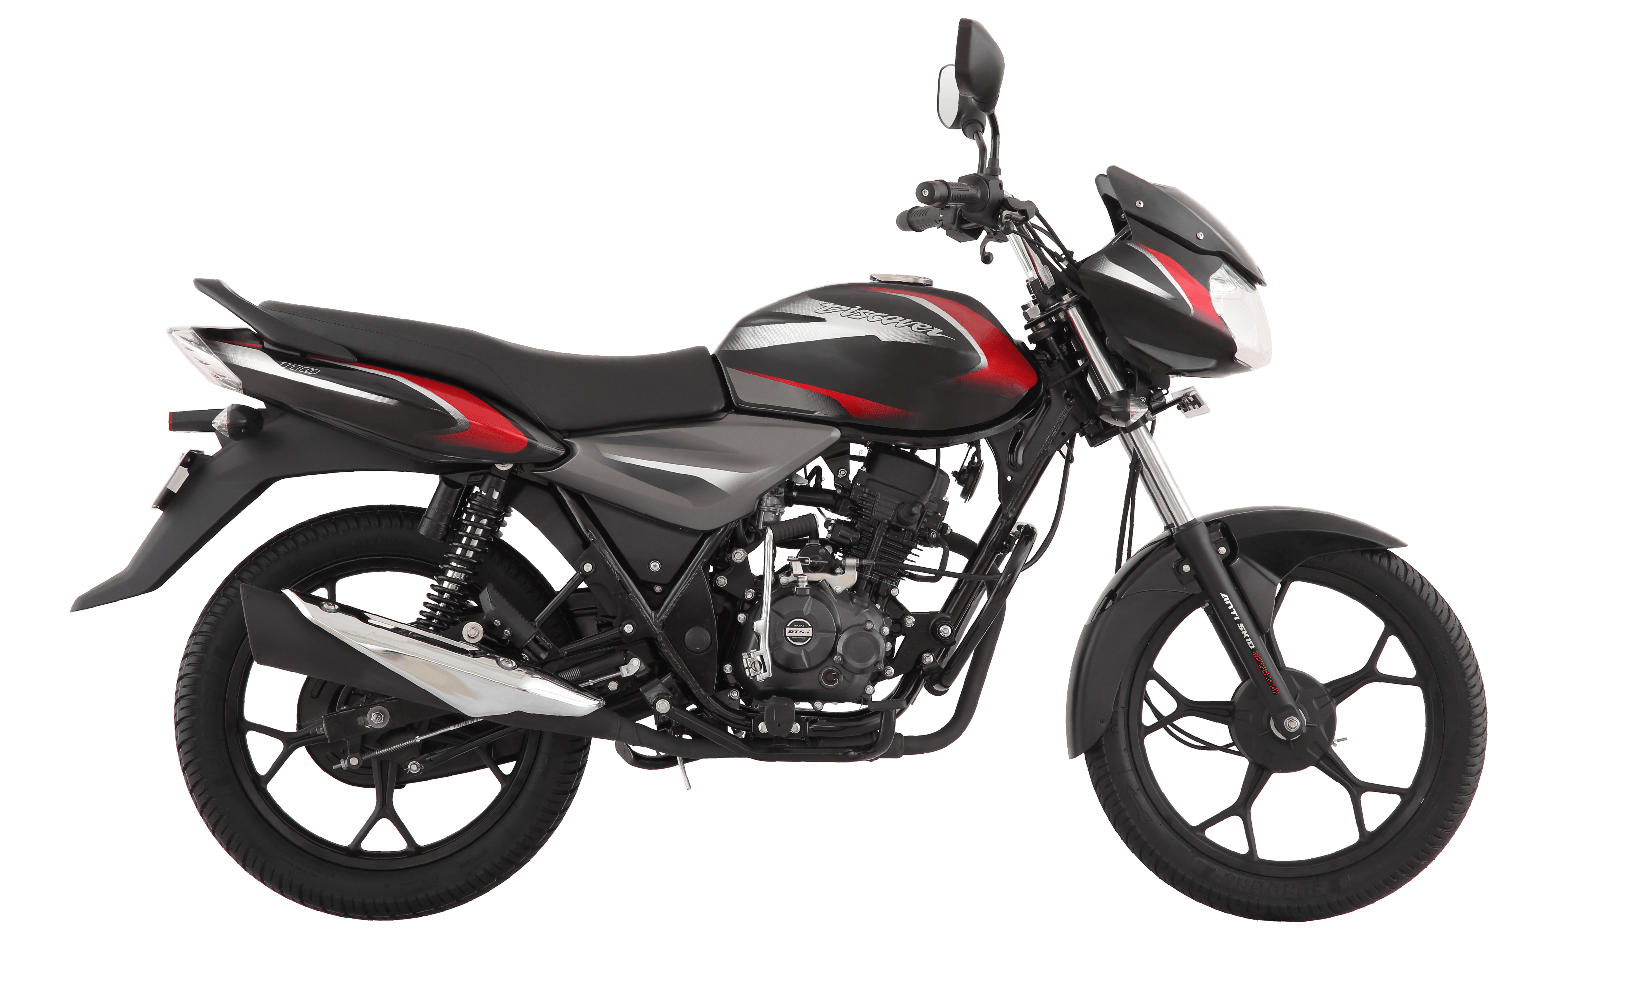 Black and Red color Bajaj Discover 110cc Motorcycle Price